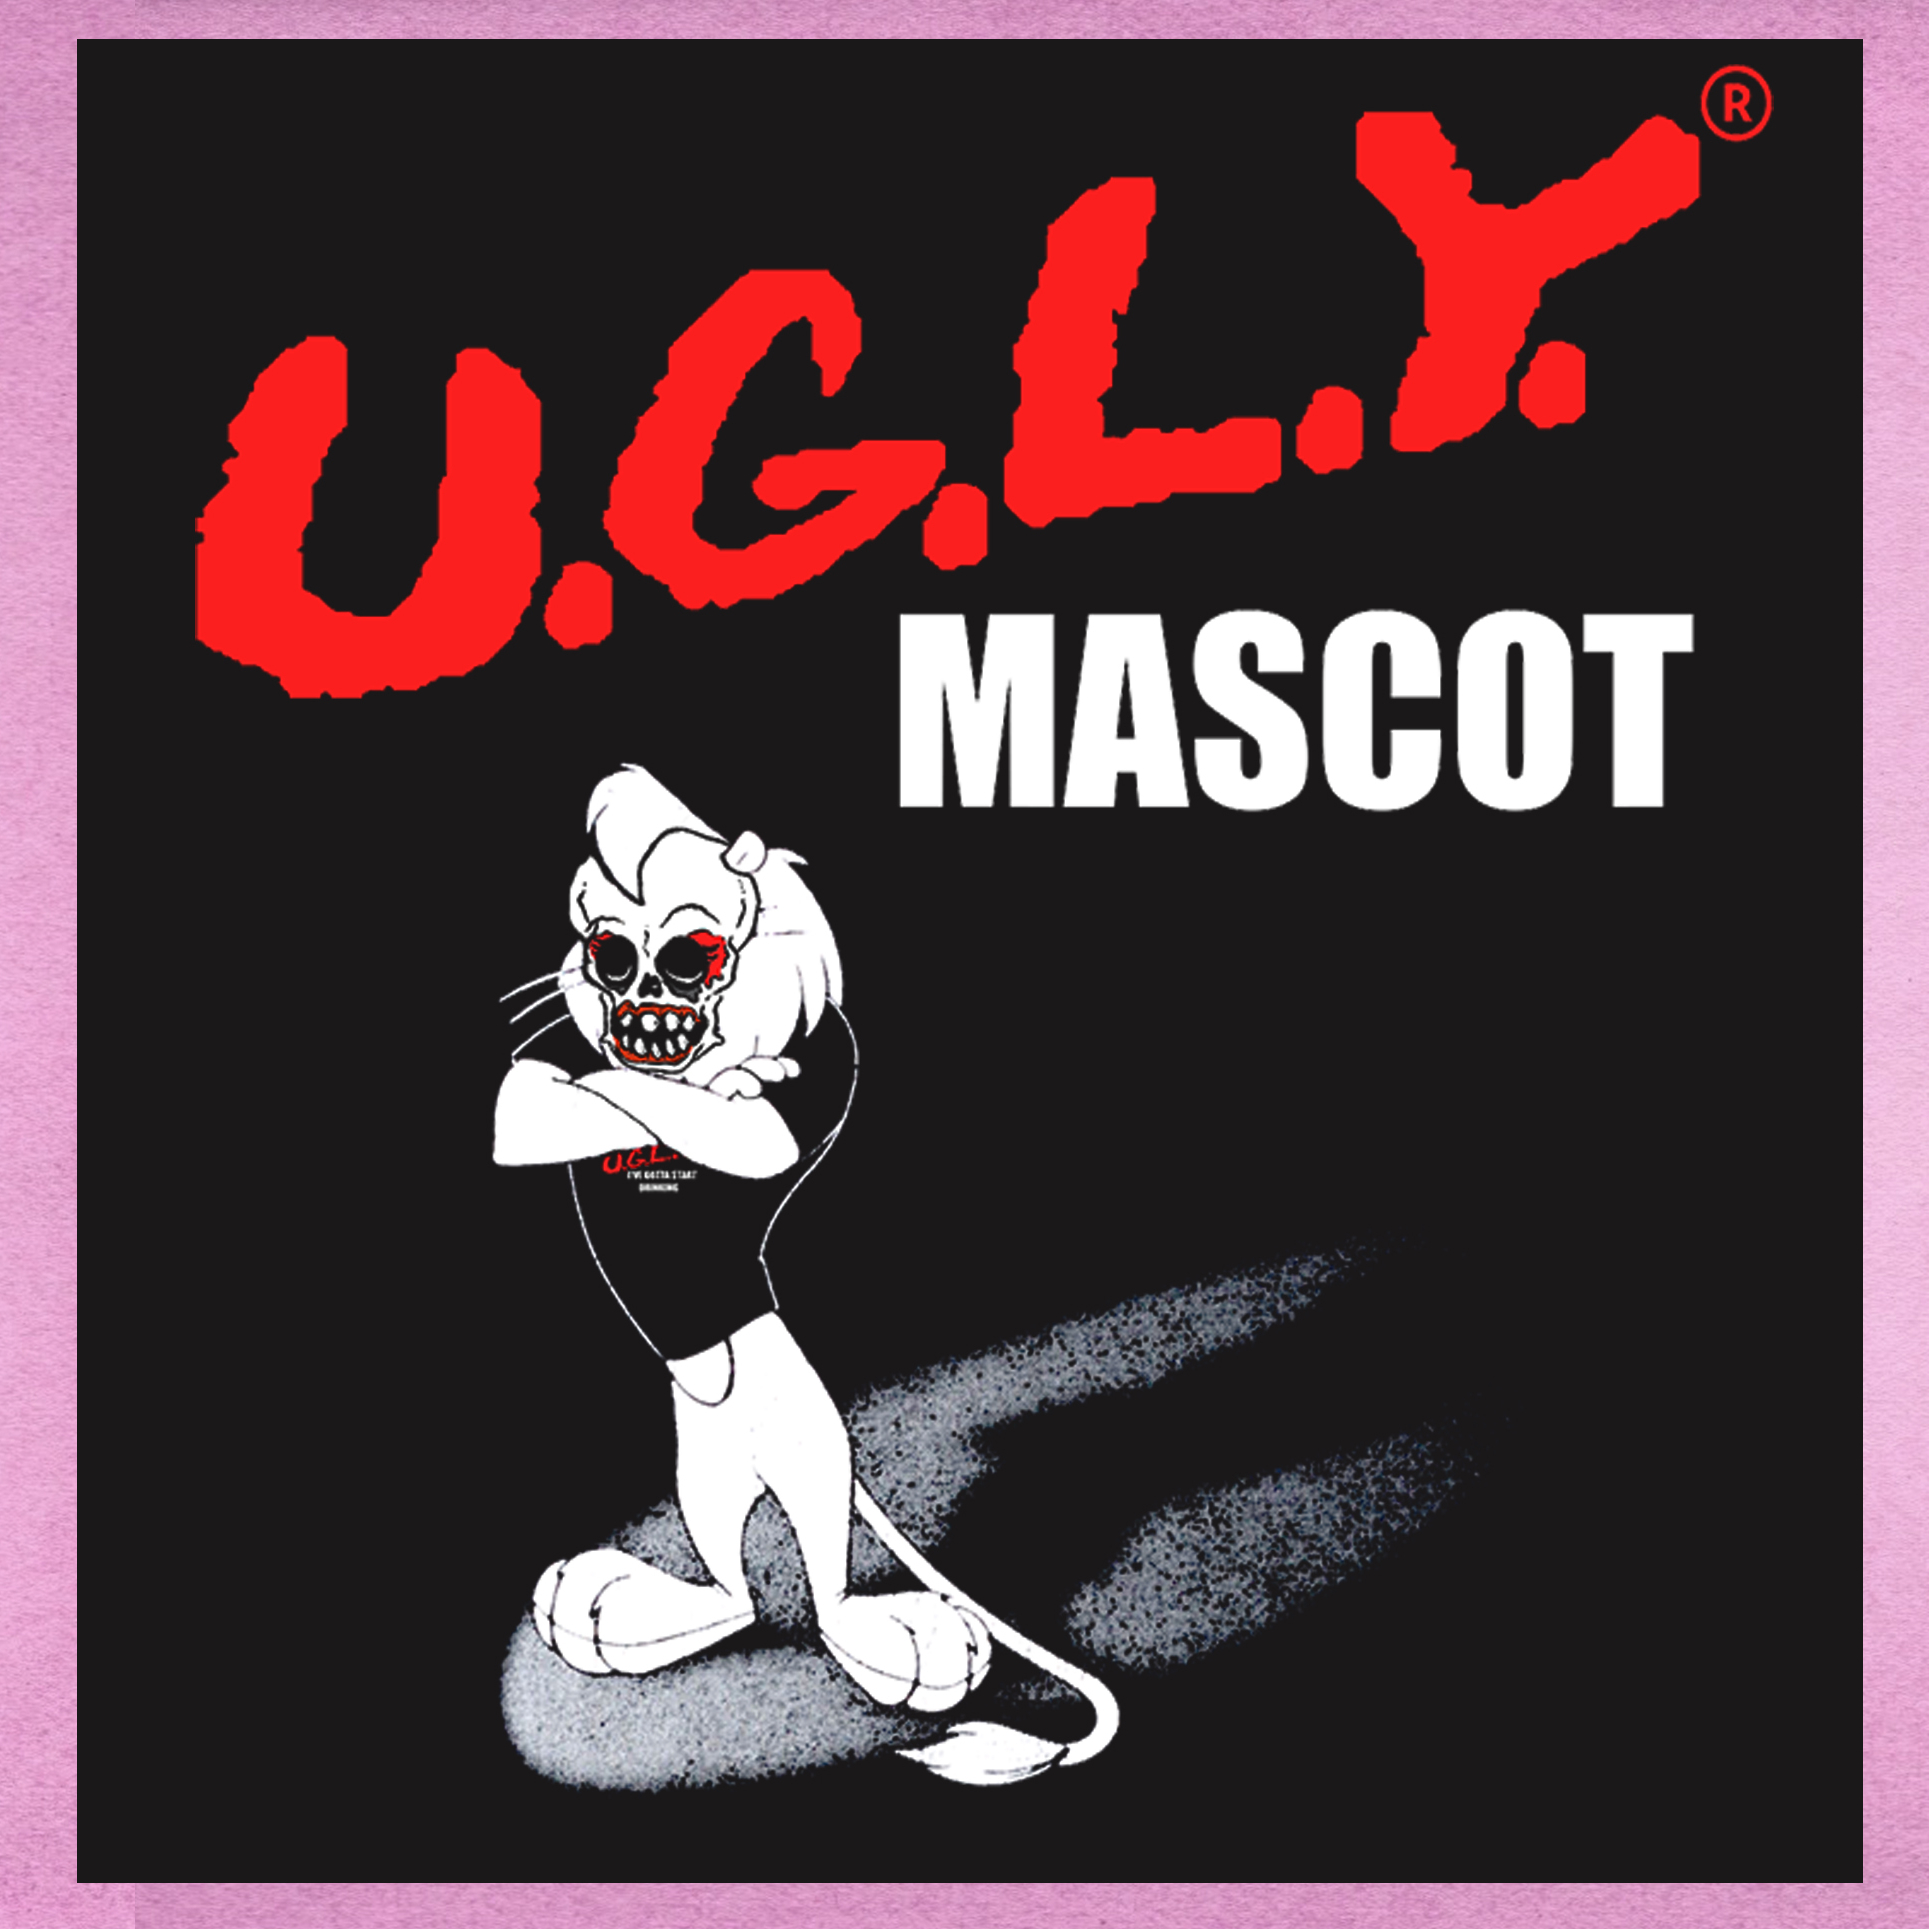 Ugly Mascot - 'You Let Him Down' Tee